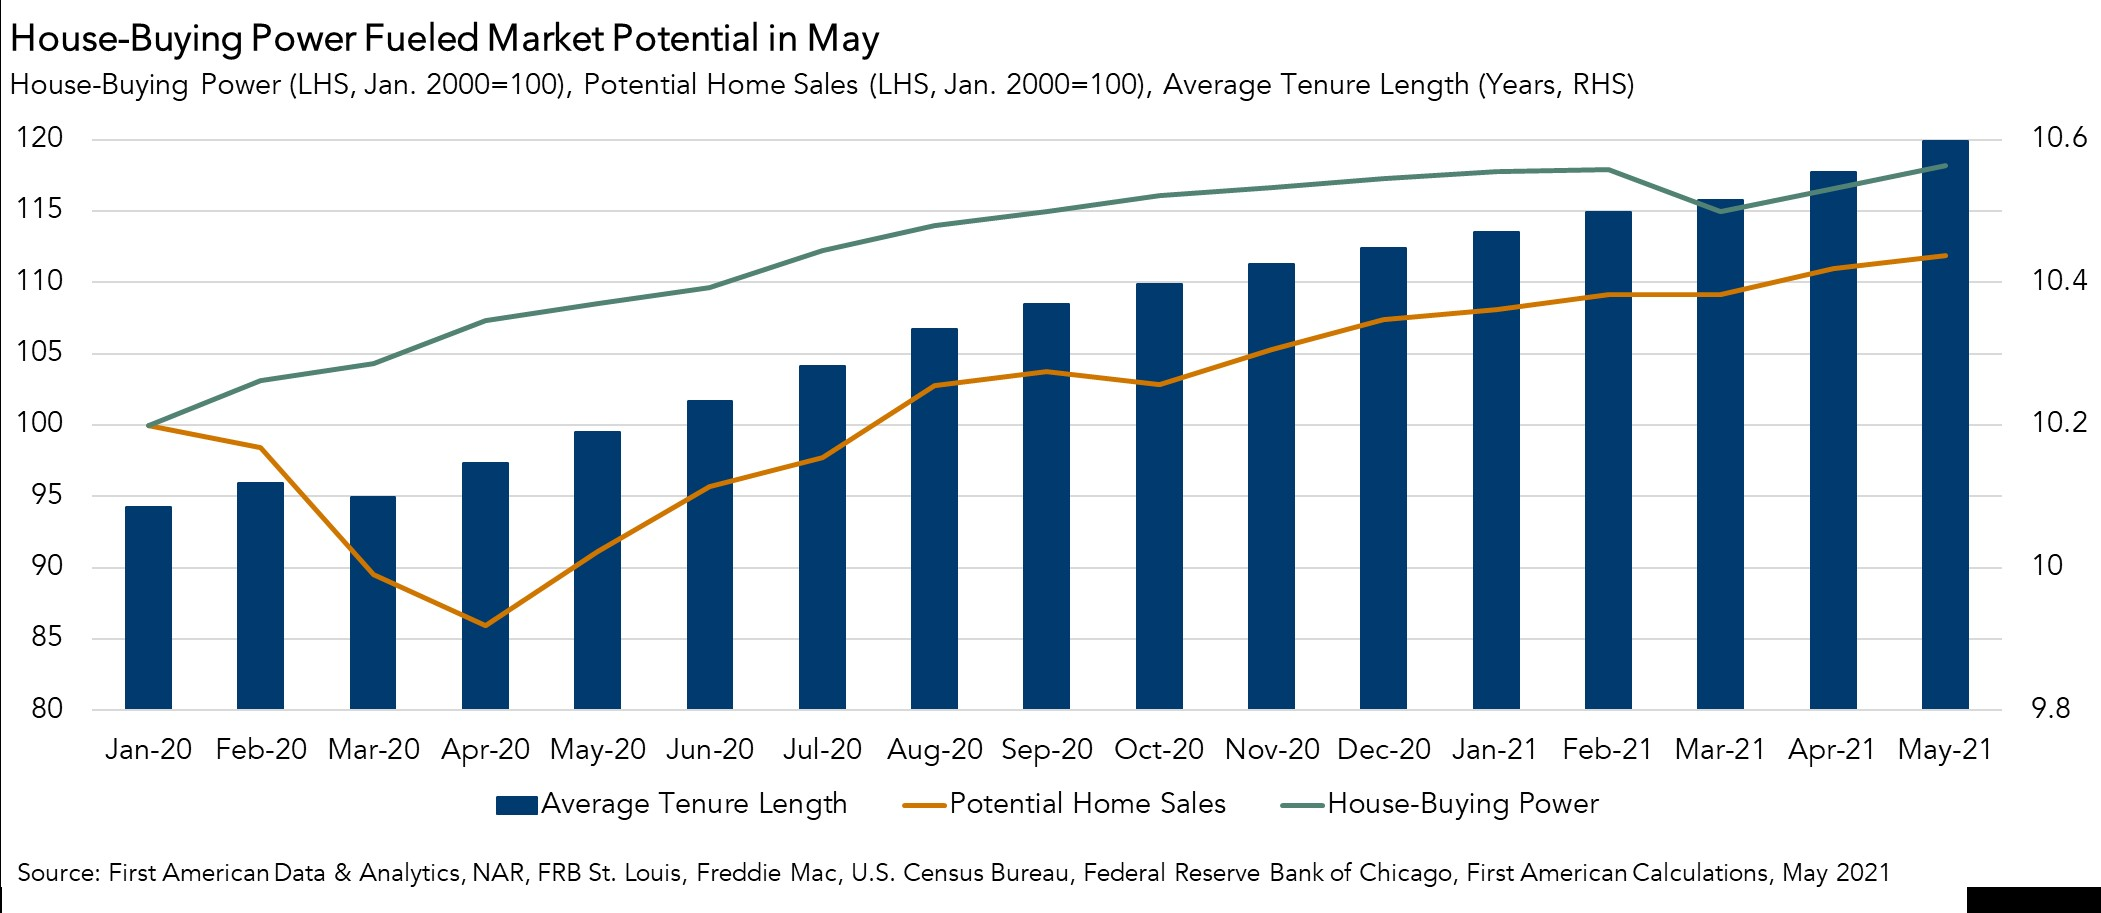 House-Buying Power Fueled Market Potential in May - Chart May 2021